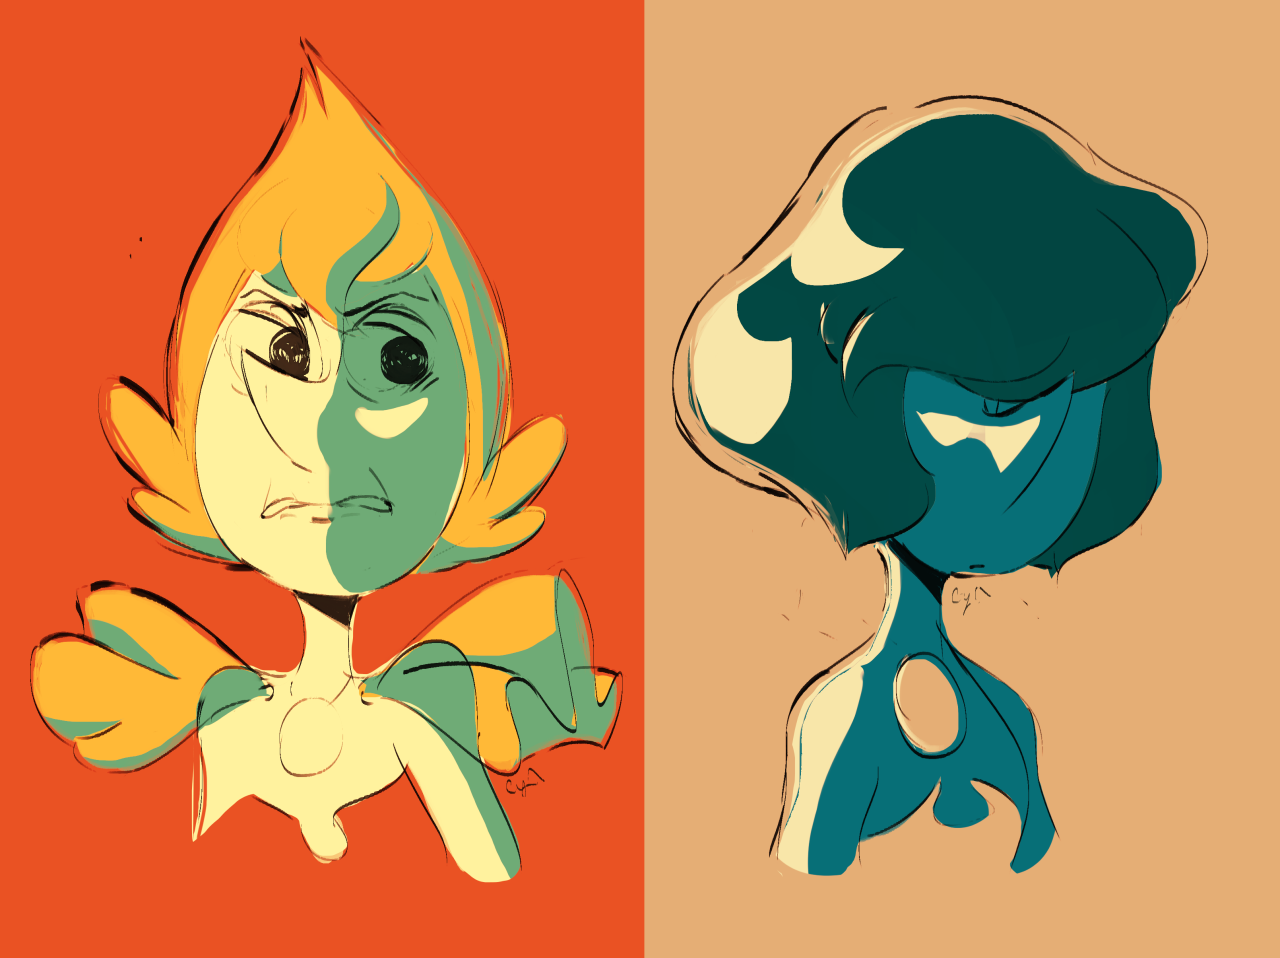 Some pearls i doodled to warm up for something else